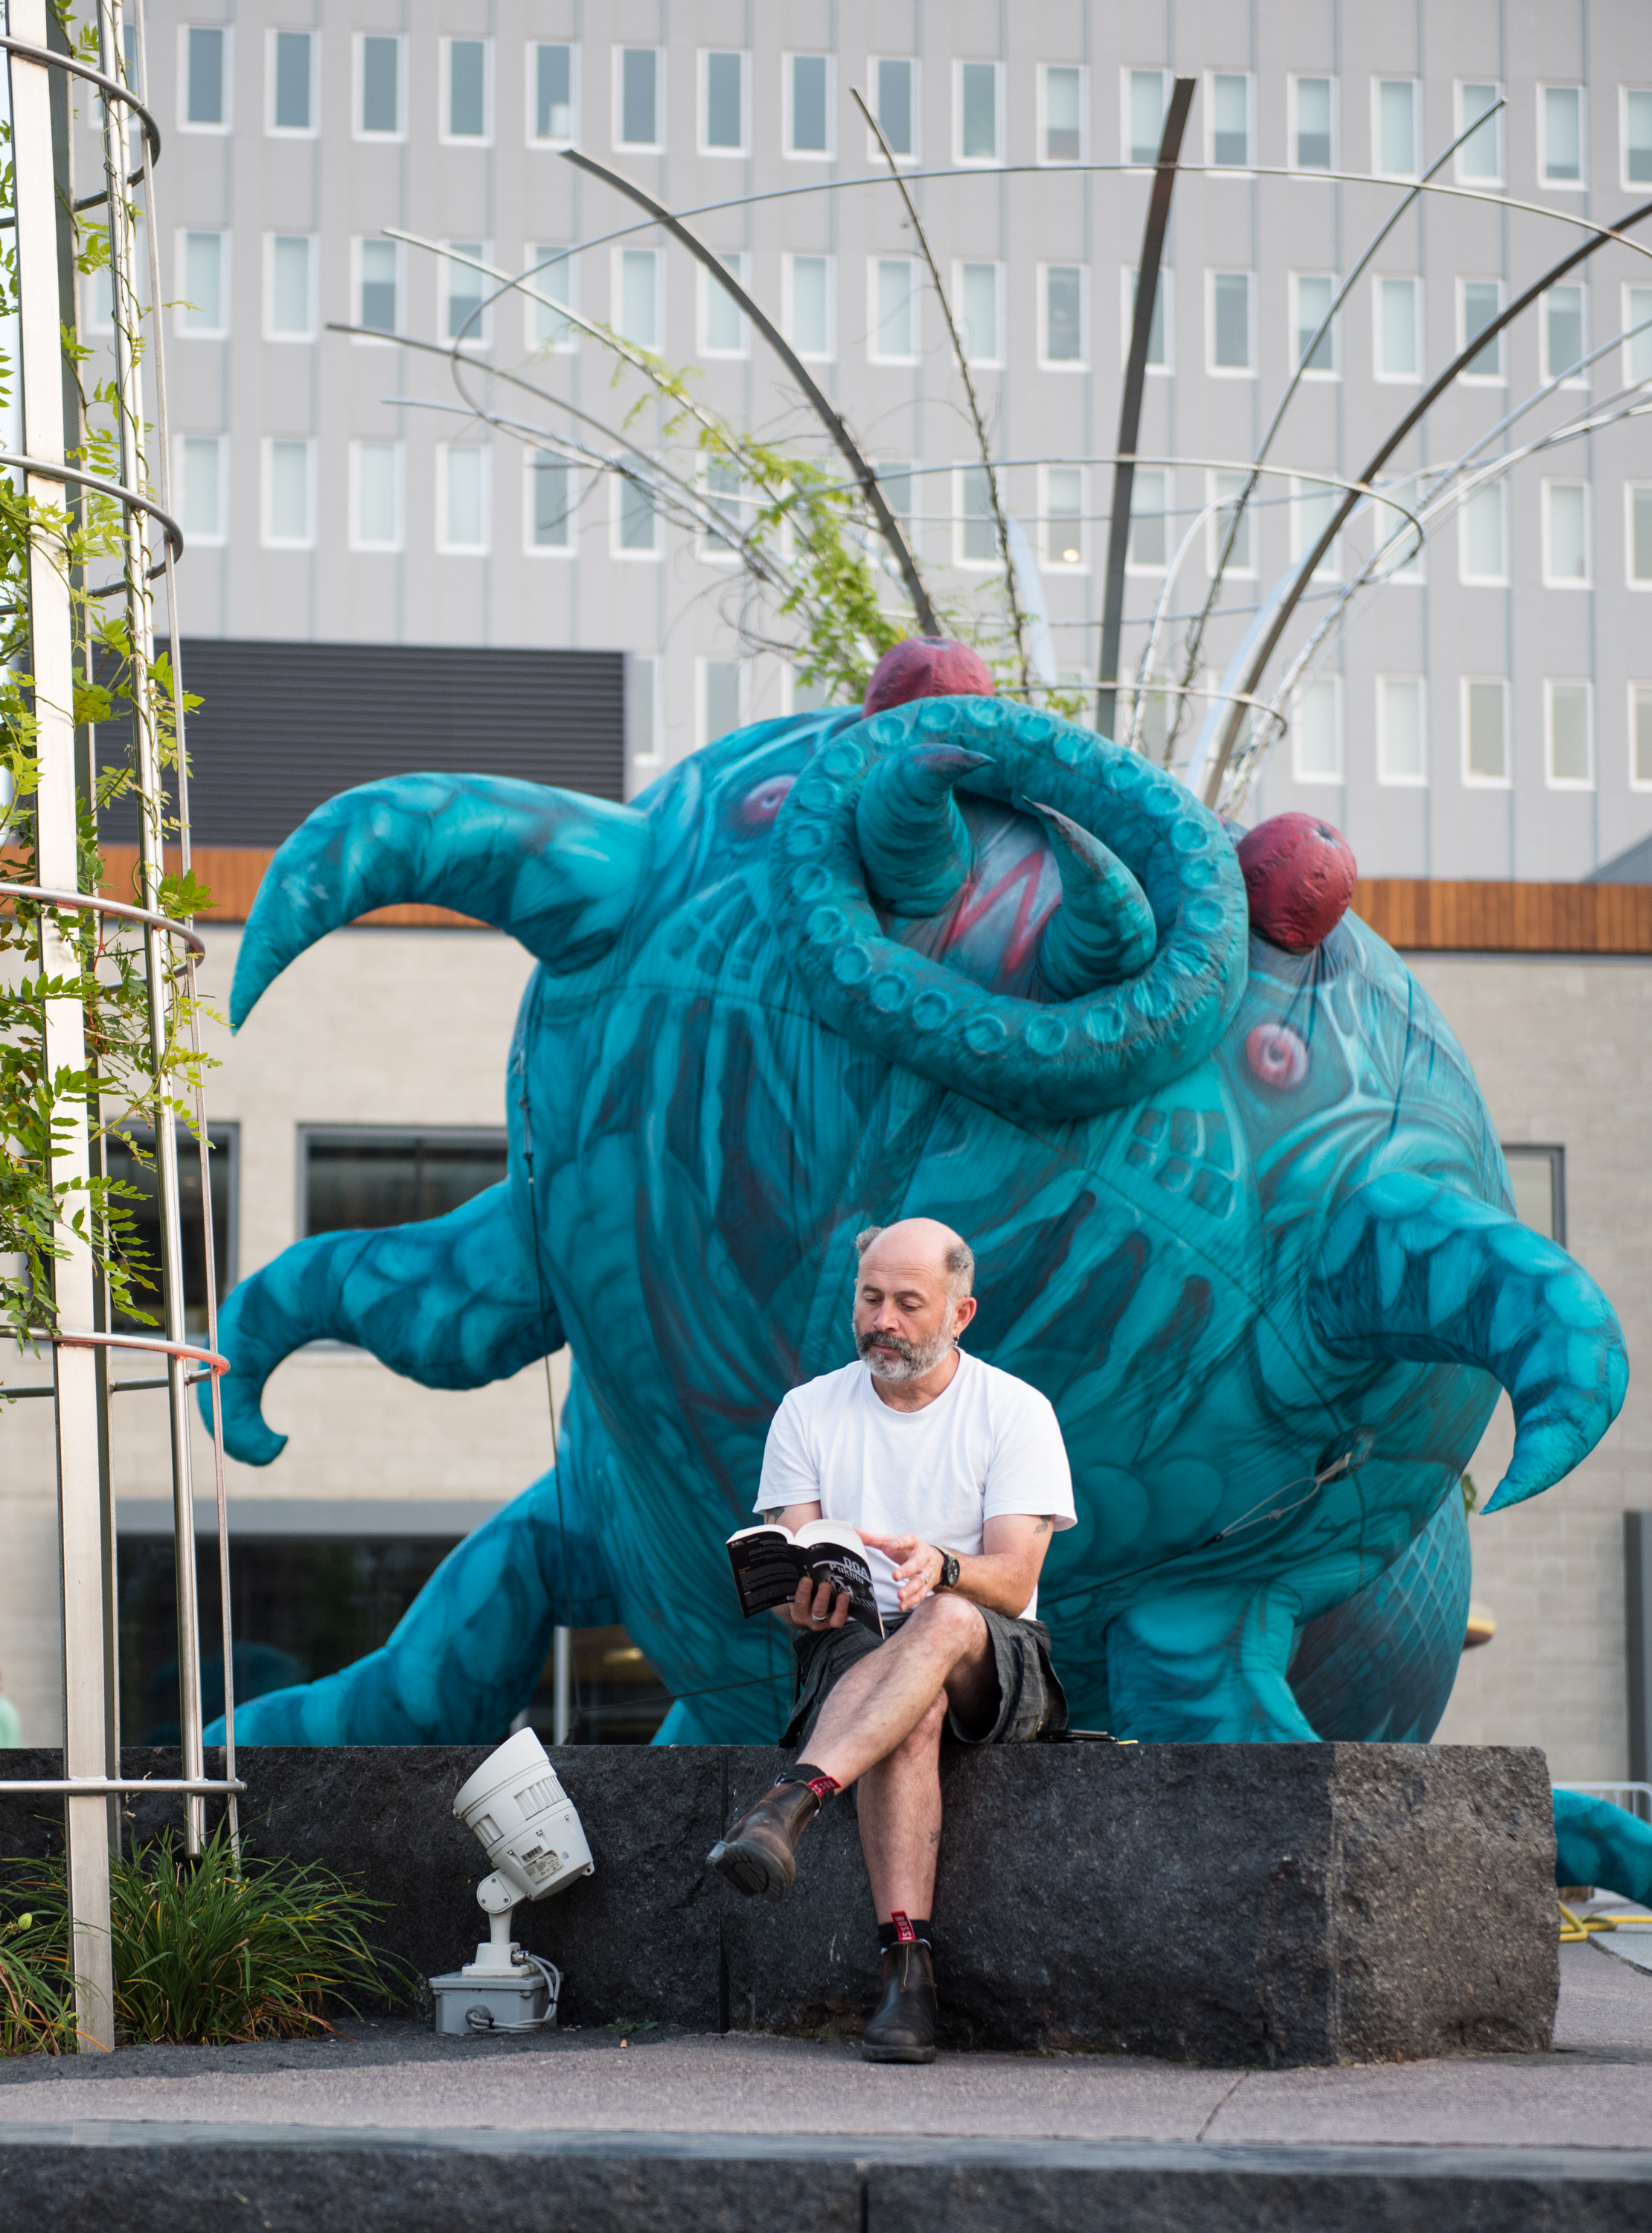 """Gilles """"Lubrick"""" Econard of Plasticiens Volants reads as he waits to perform. Plasticiens Volants has performed across the globe, including the 2016 Olympic Games in Rio de Janerio."""